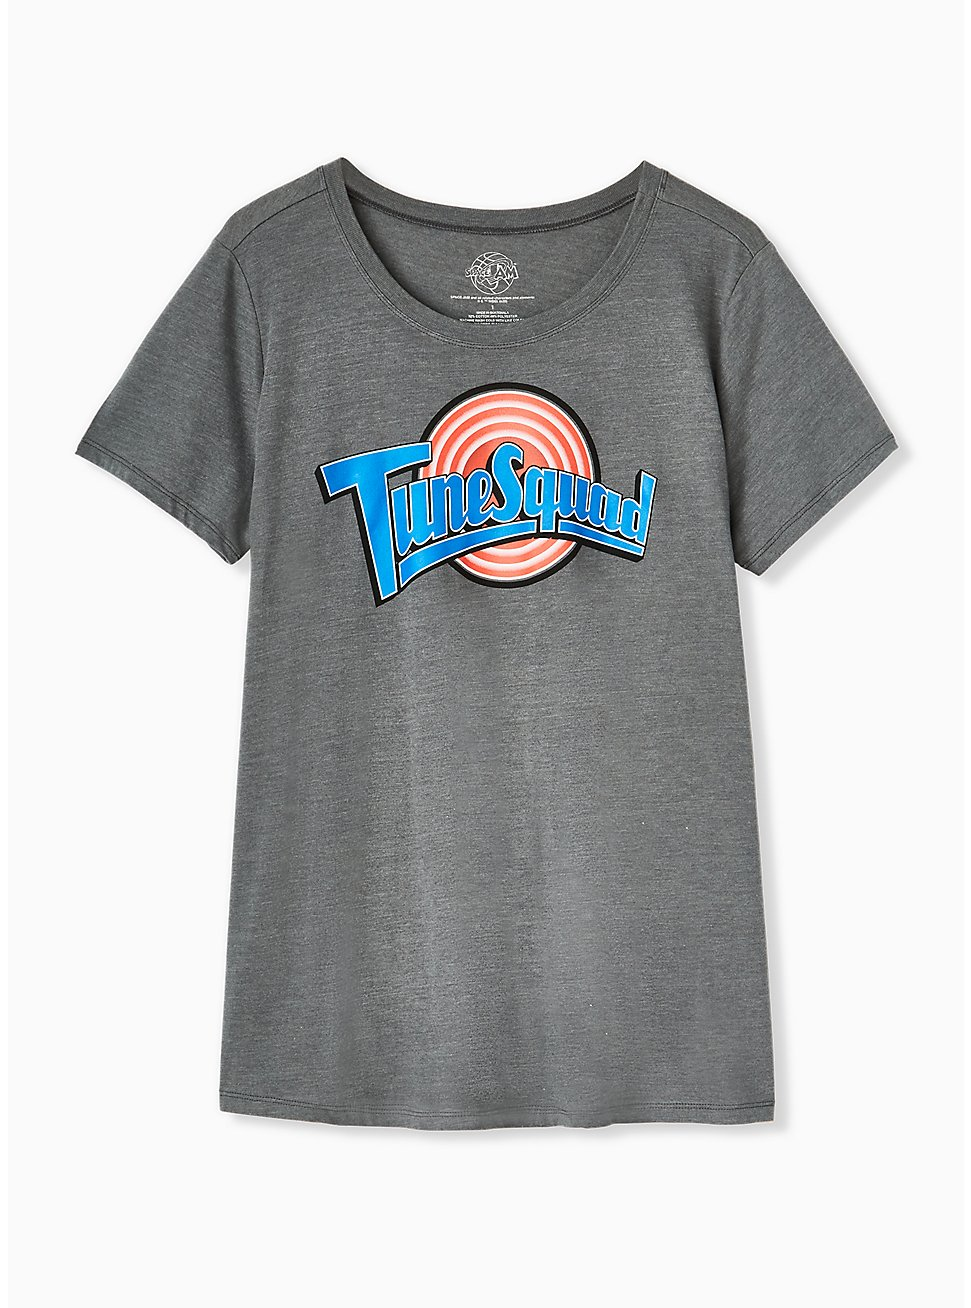 Space Jam Tune Squad Heather Grey Crew Tee, MEDIUM HEATHER GREY, hi-res